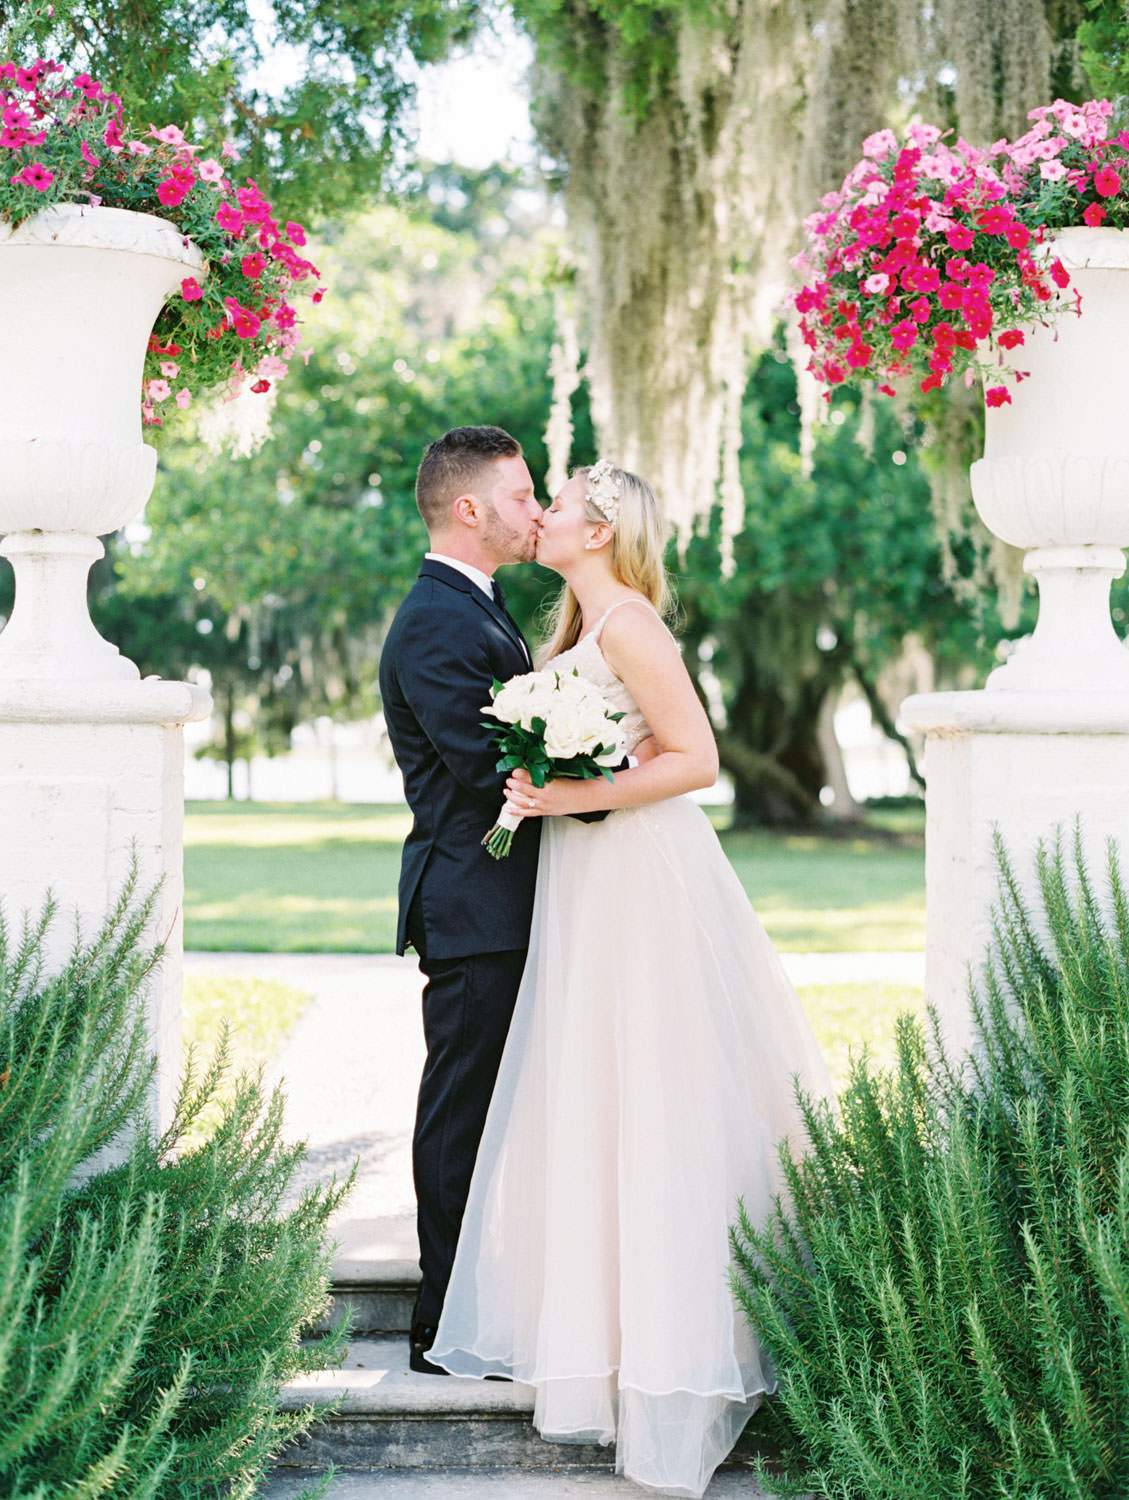 Bride in a champagne gown with a floral tiara headband private vow reading with groom in black tuxedo. Film photography at Jekyll Island Club Resort Wedding by Cavin Elizabeth Photography